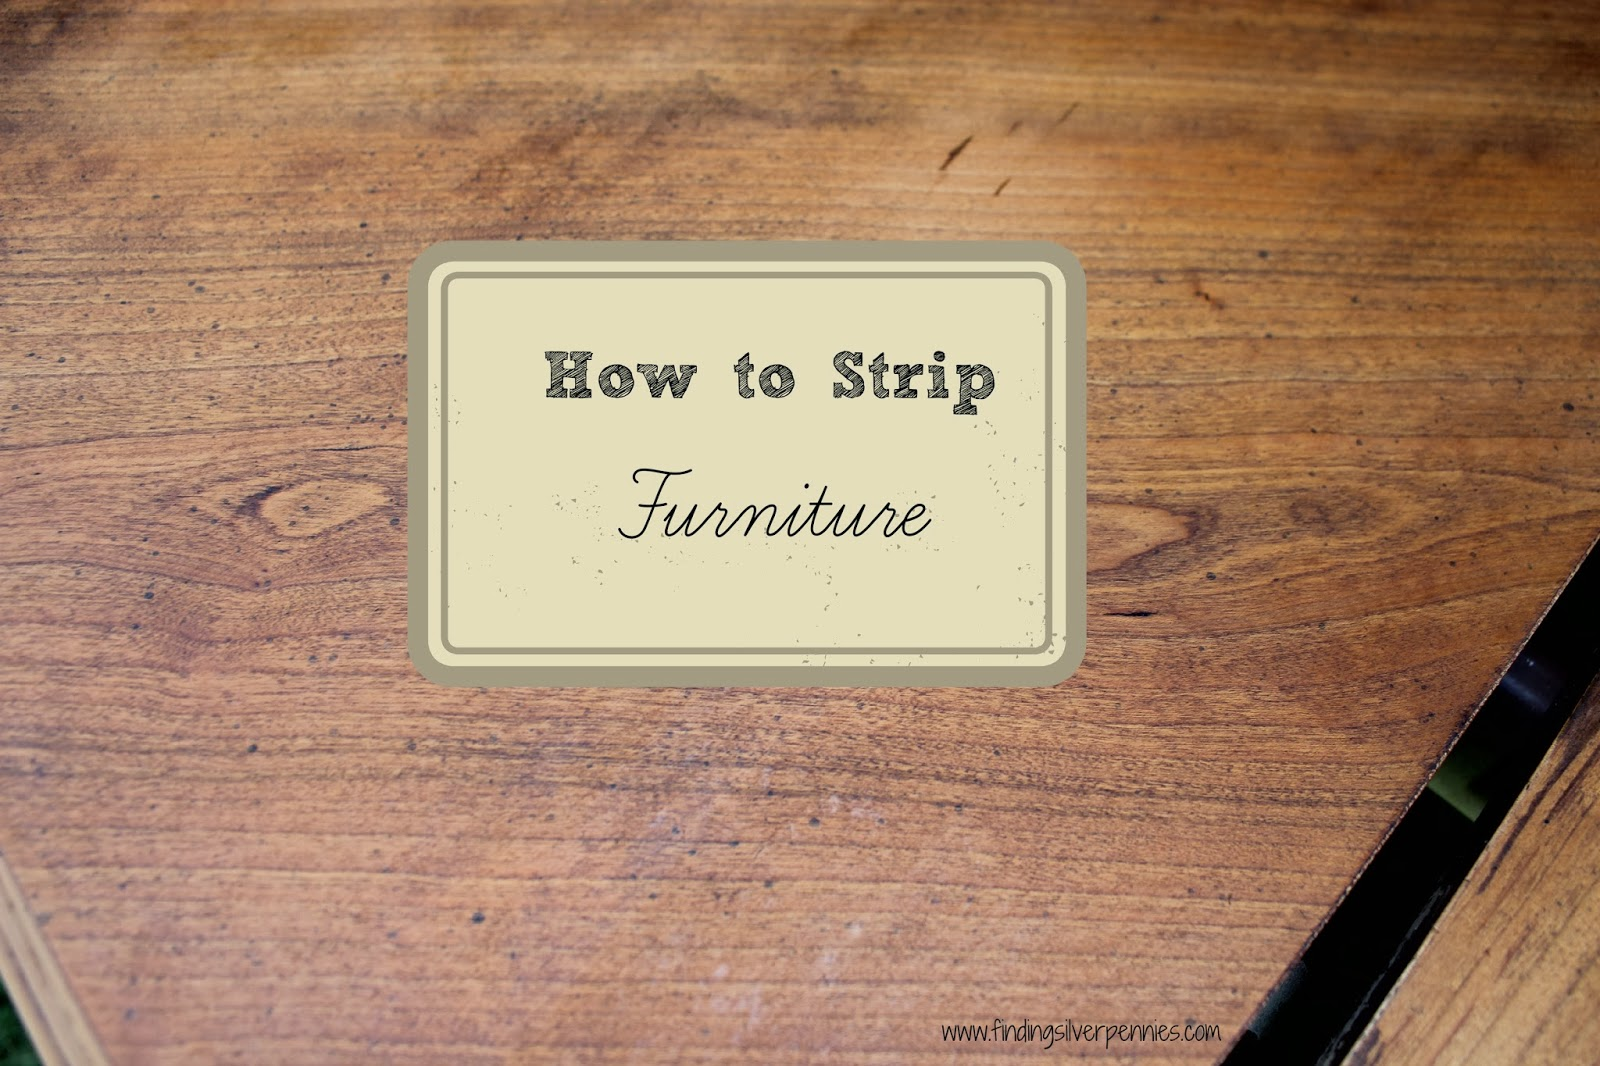 Staining Furniture 101 Finding Silver Pennies